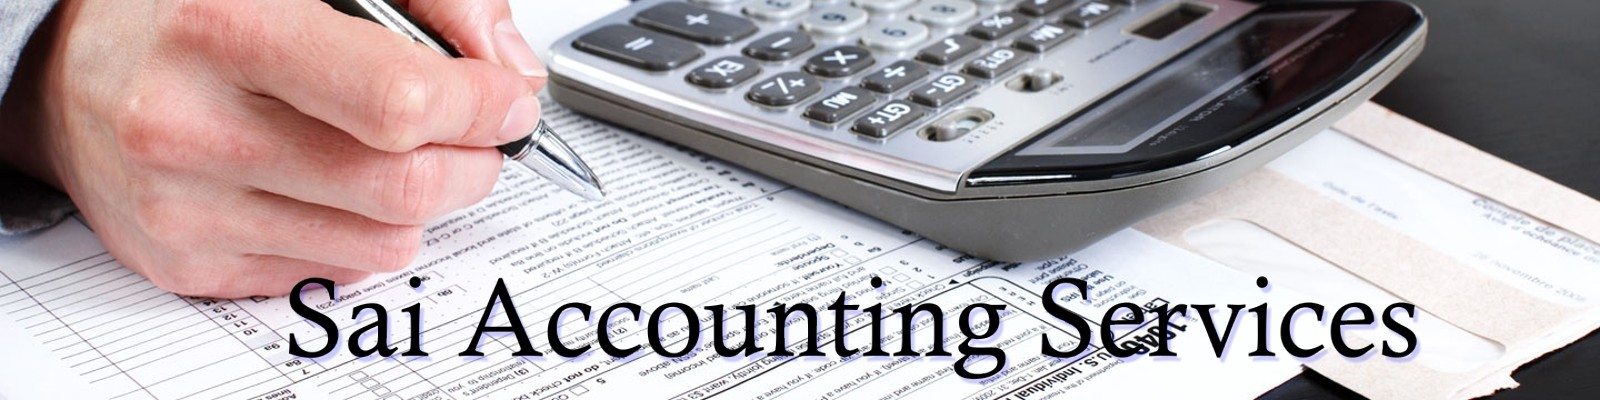 Sai Accounting Services Housing Society Accounting Services